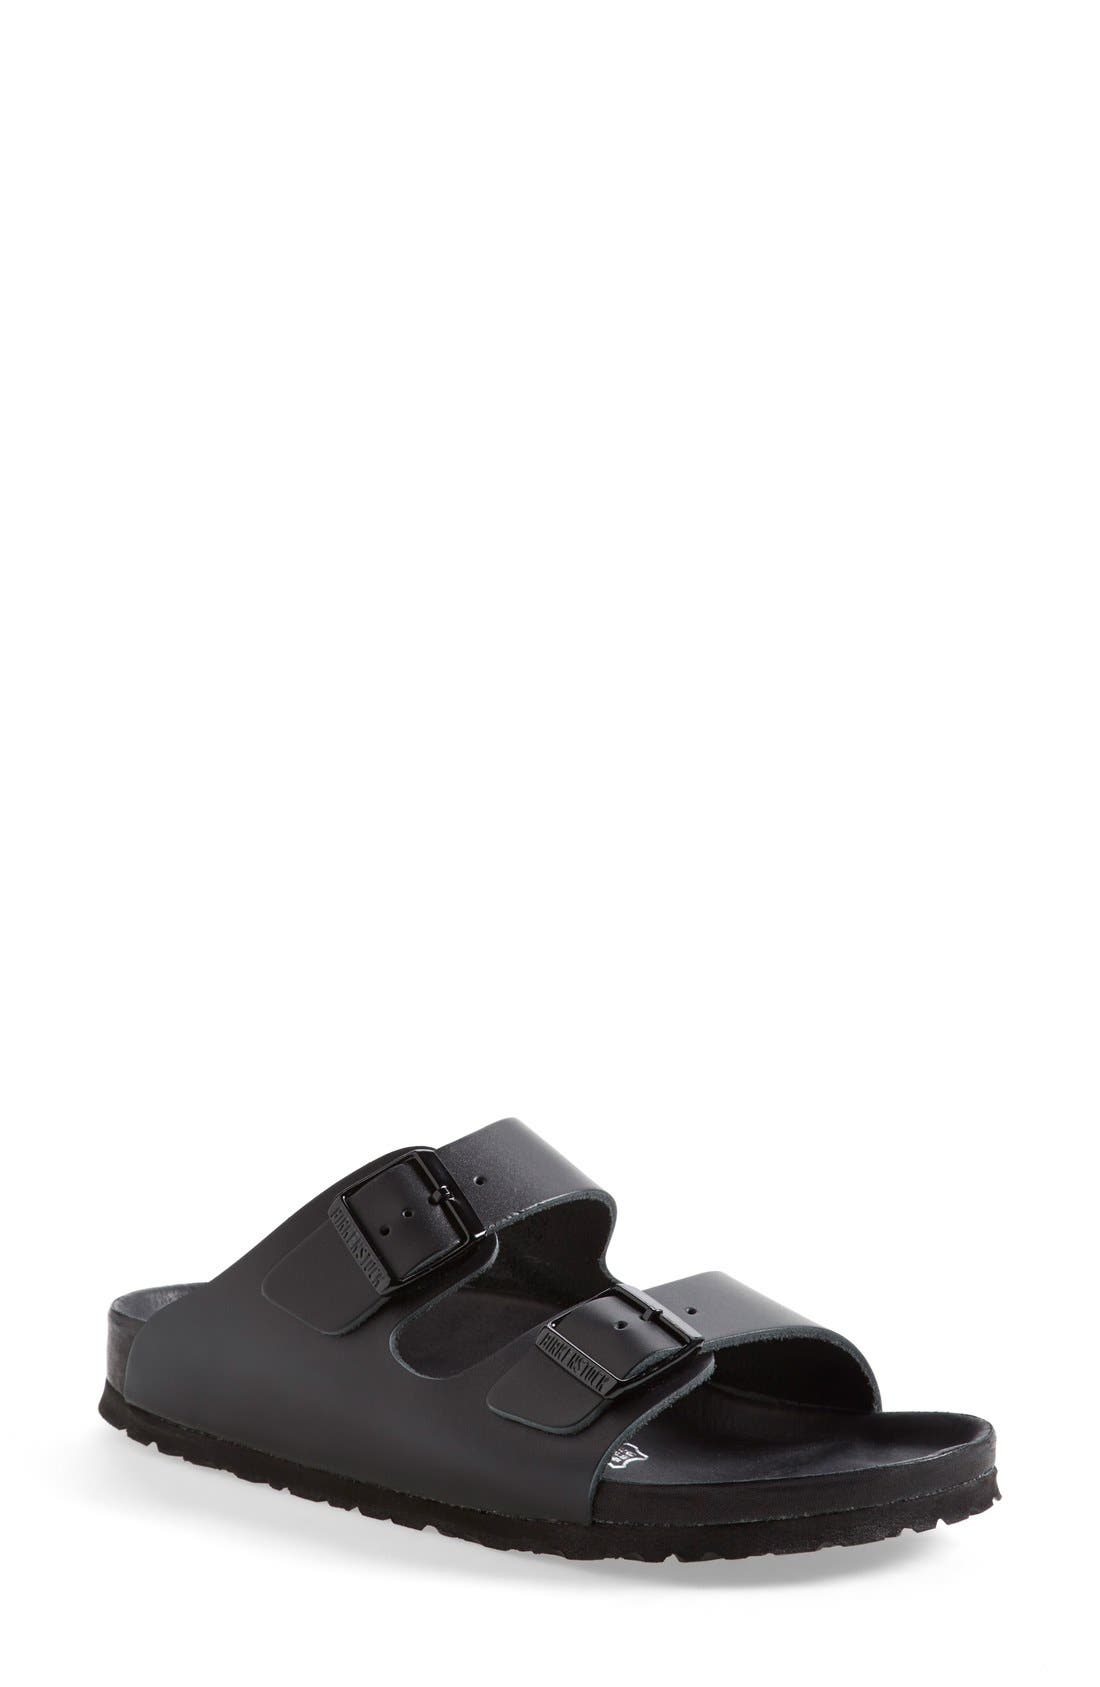 Alternate Image 1 Selected - Birkenstock 'Monterey' Leather Sandal